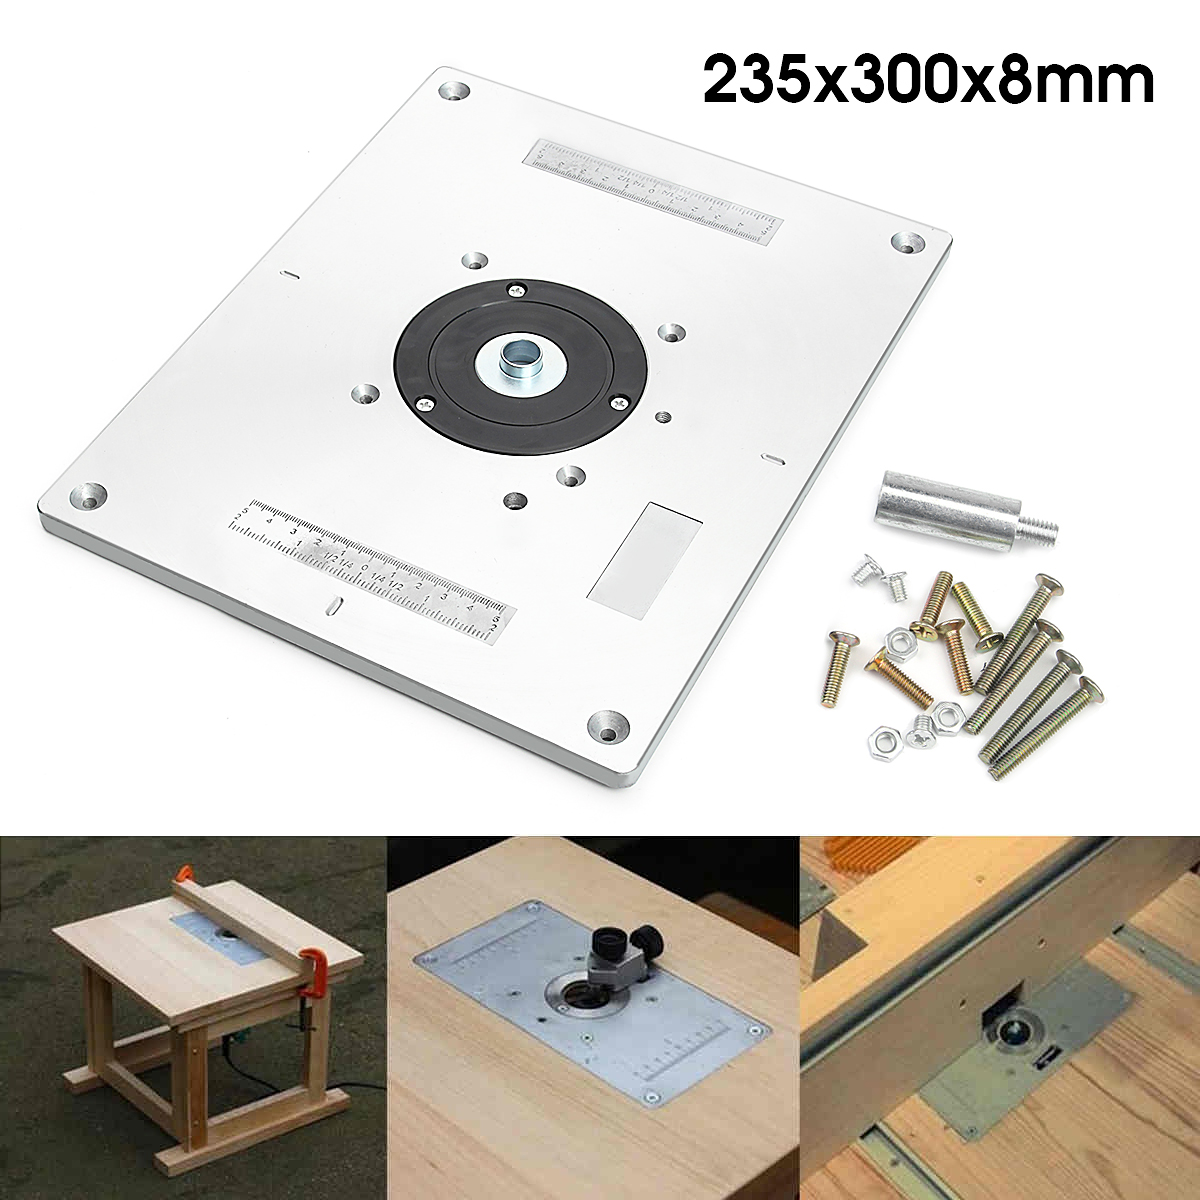 Aluminum Router Table Insert Plate 235mm X 300mm X 8mm For Woodworking Benches